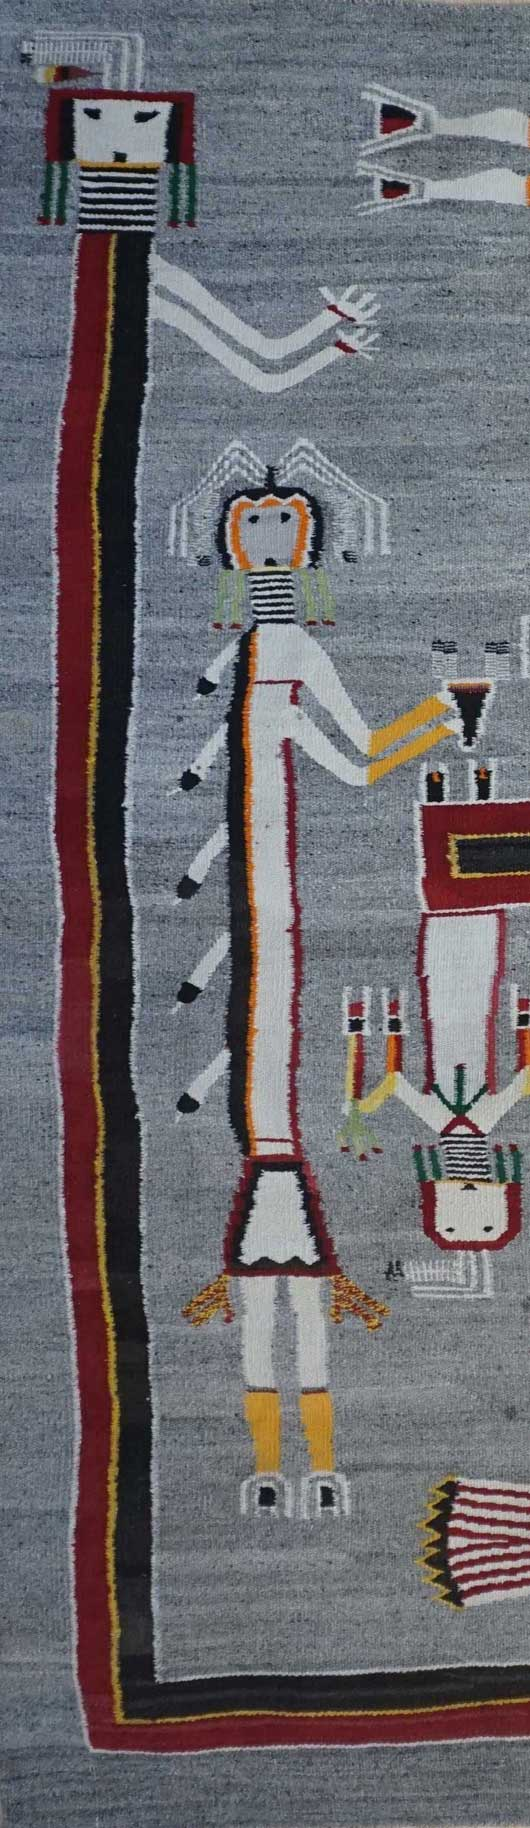 Large Sandpainting Navajo Rug from the Nightway Ceremony 1115 Photo 002